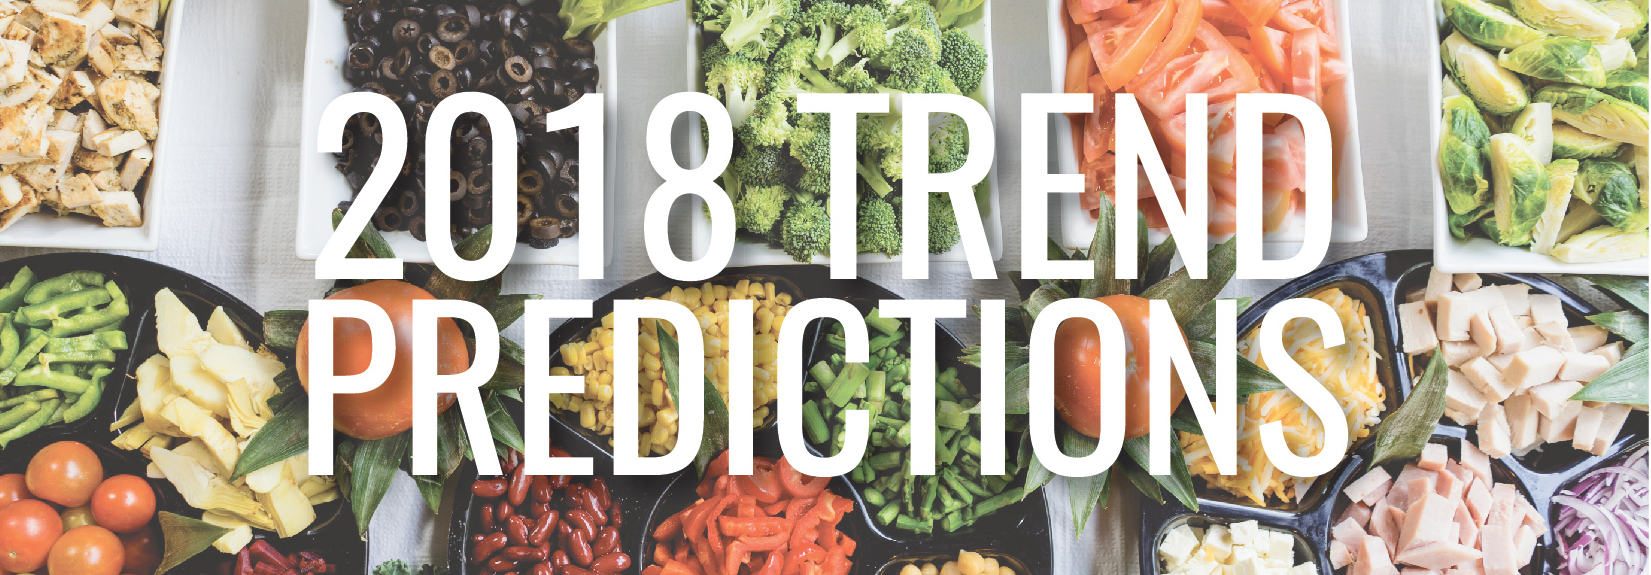 2018 Trend Predictions set over an image of vegetables and fruits and meats and cheeses